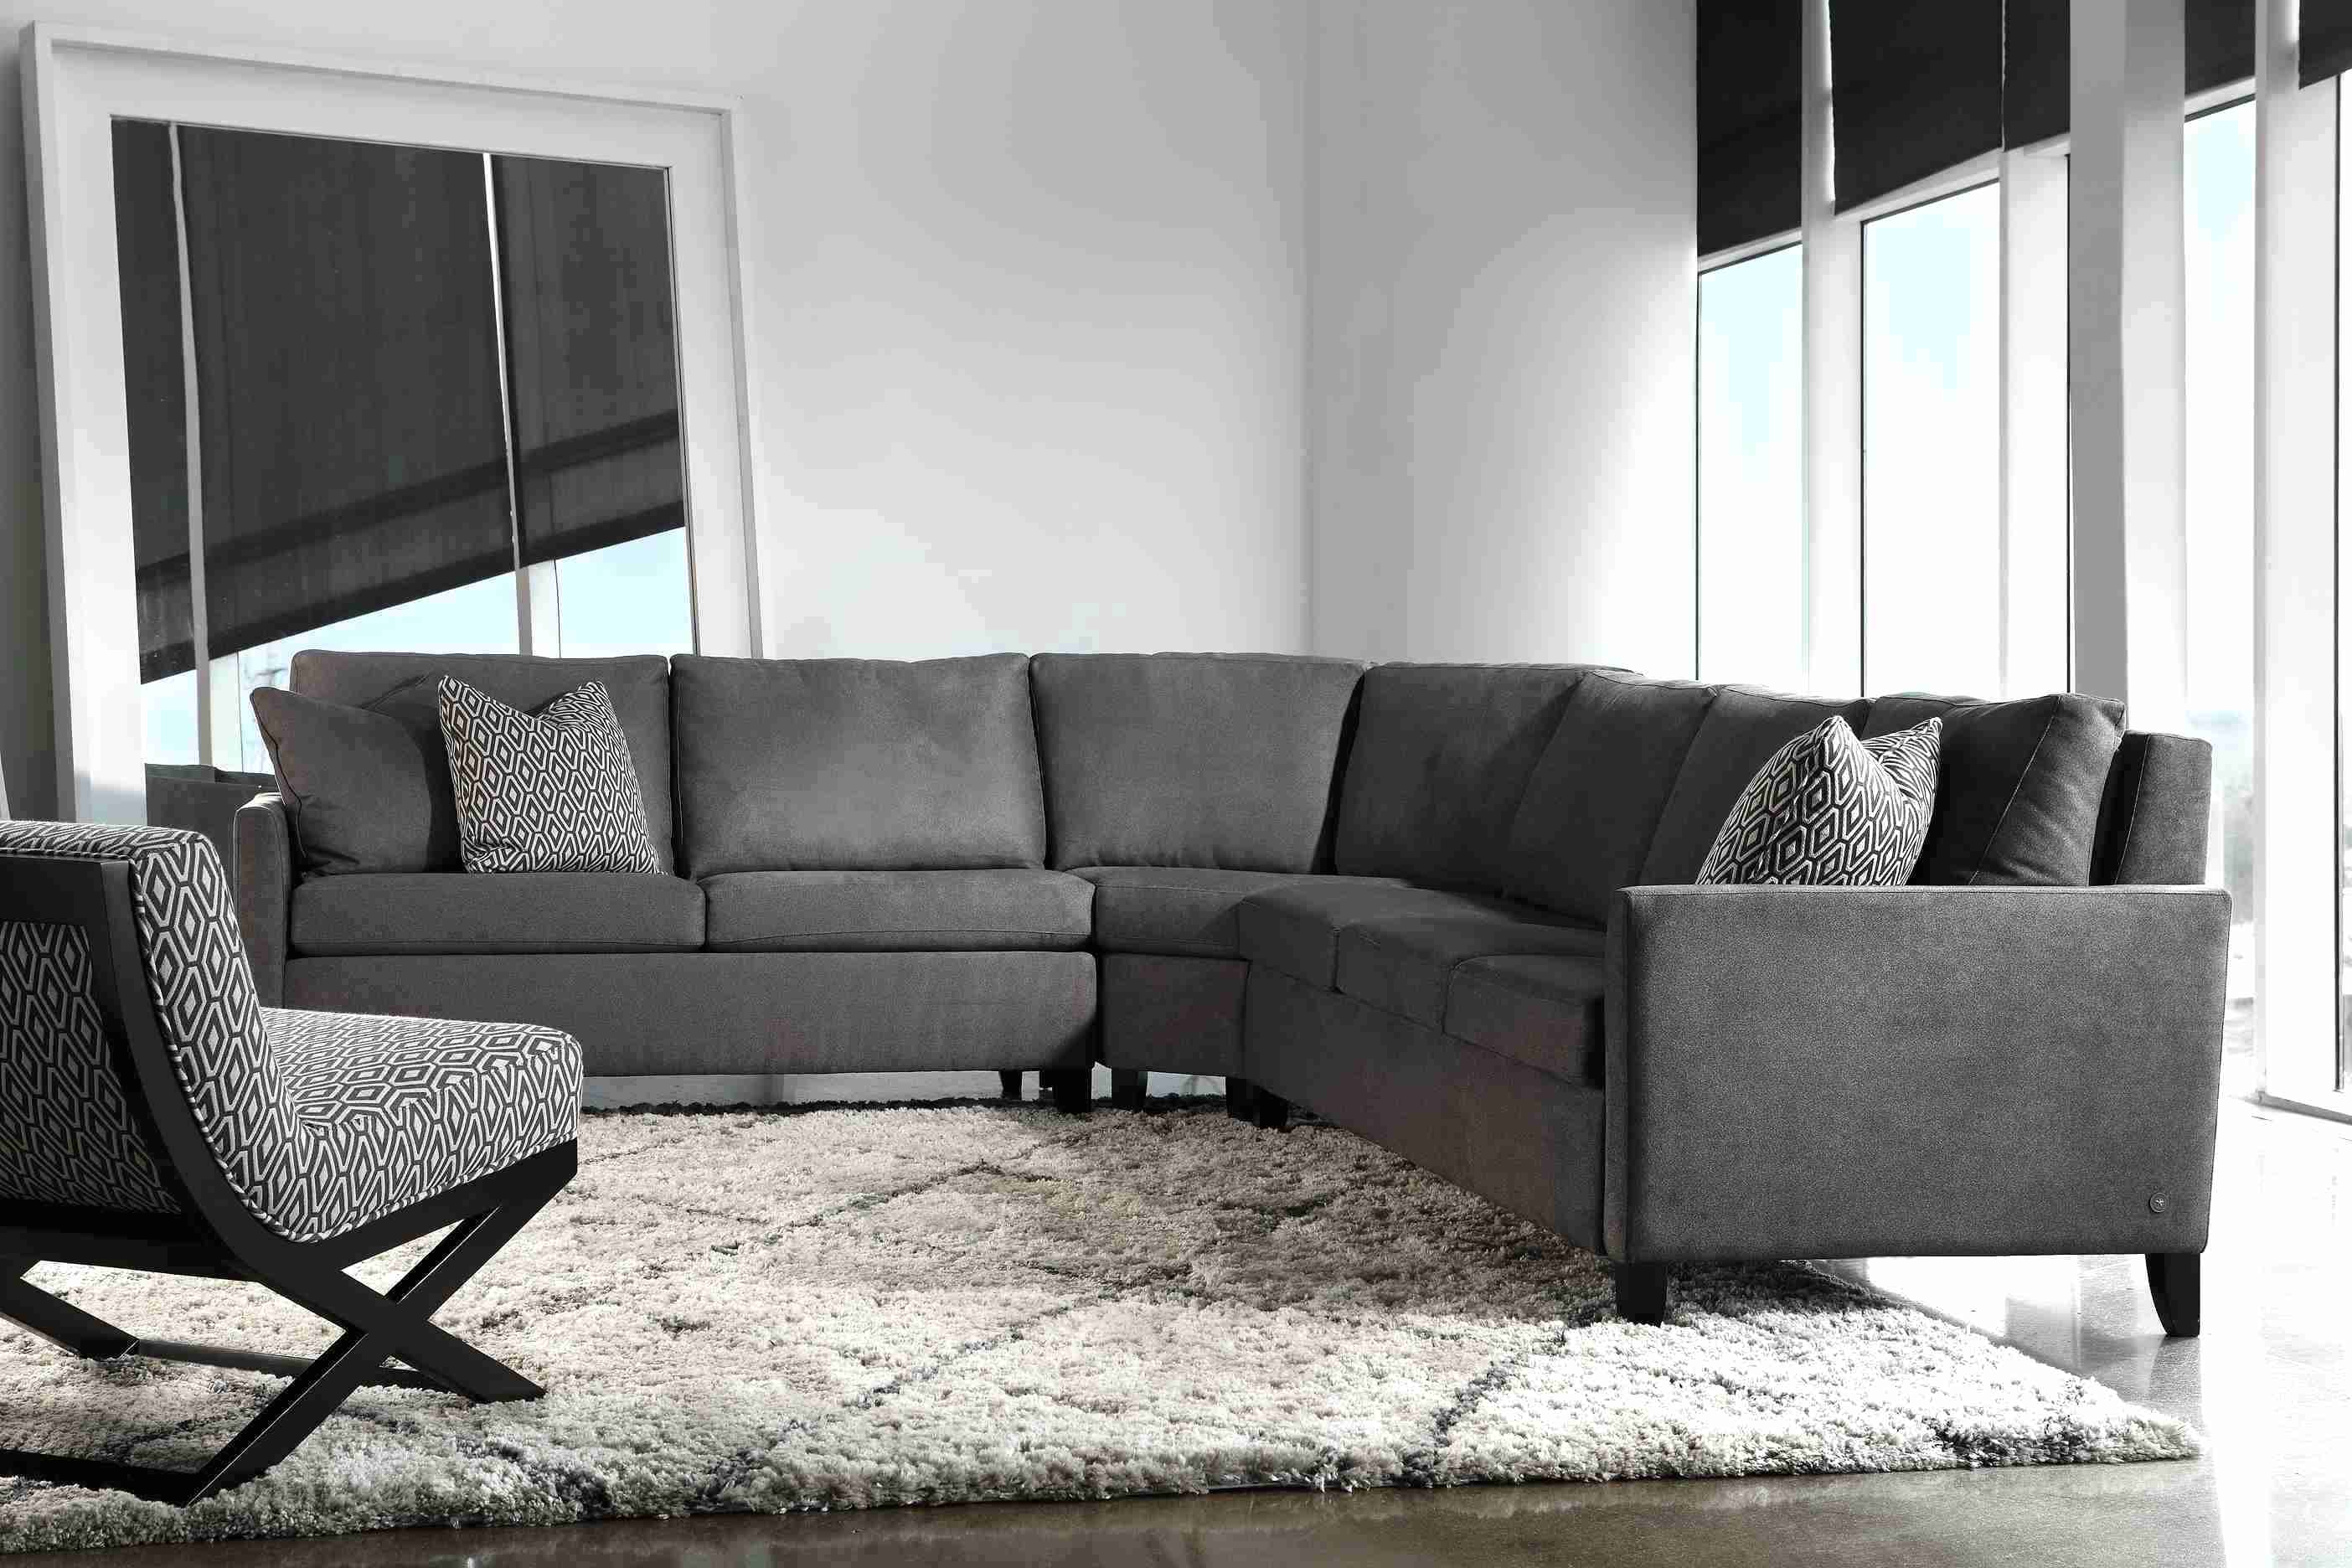 sleeper sofa sectionals grey sectional sleeper sofa gray sectional sleeper  sofa grey sleeper sofa sectional couch .